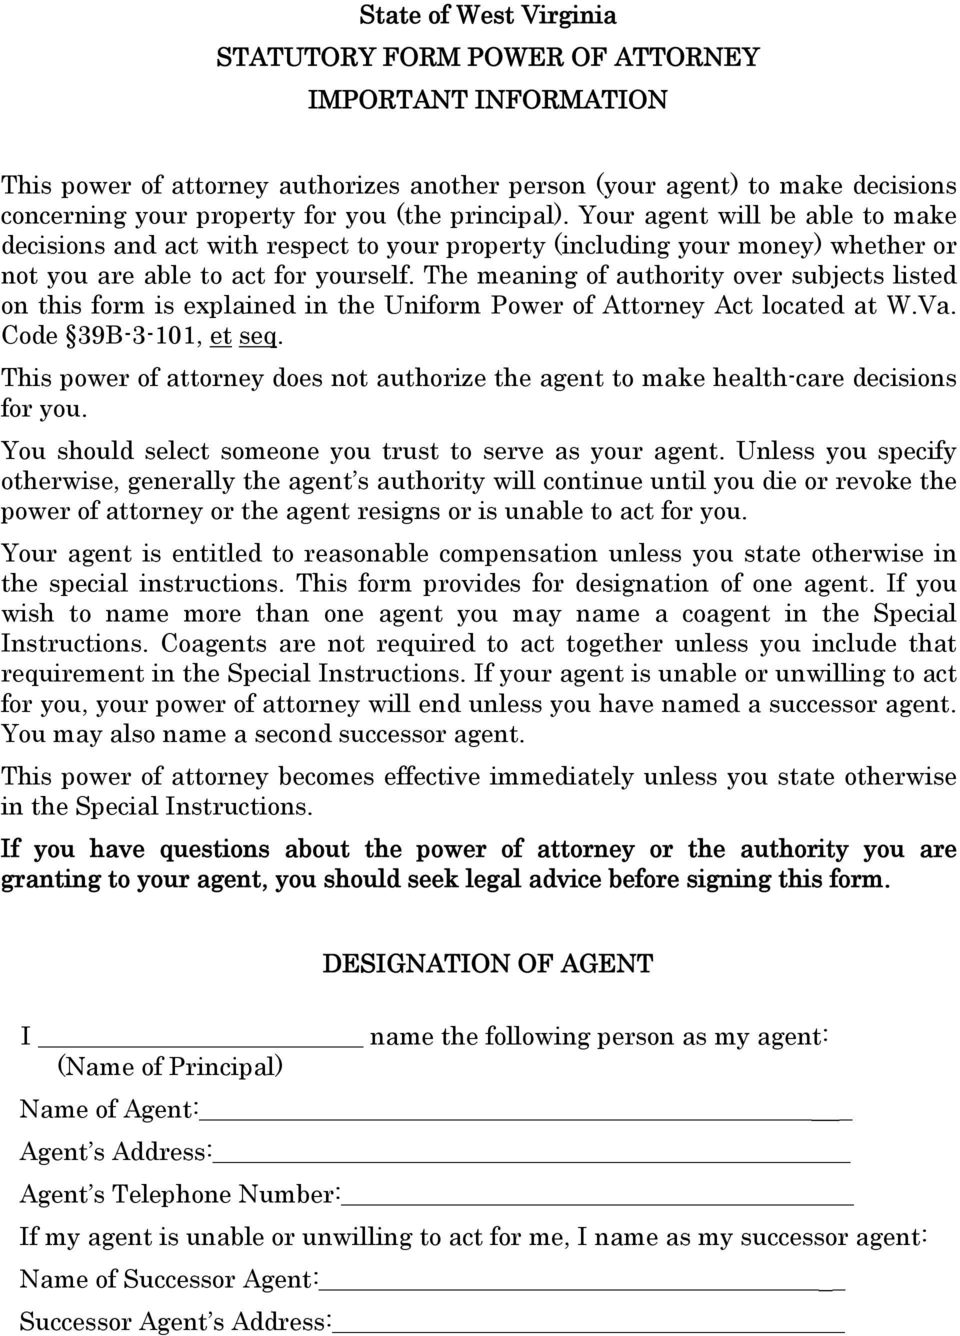 The meaning of authority over subjects listed on this form is explained in the Uniform Power of Attorney Act located at W.Va. Code 39B-3-101, et seq.